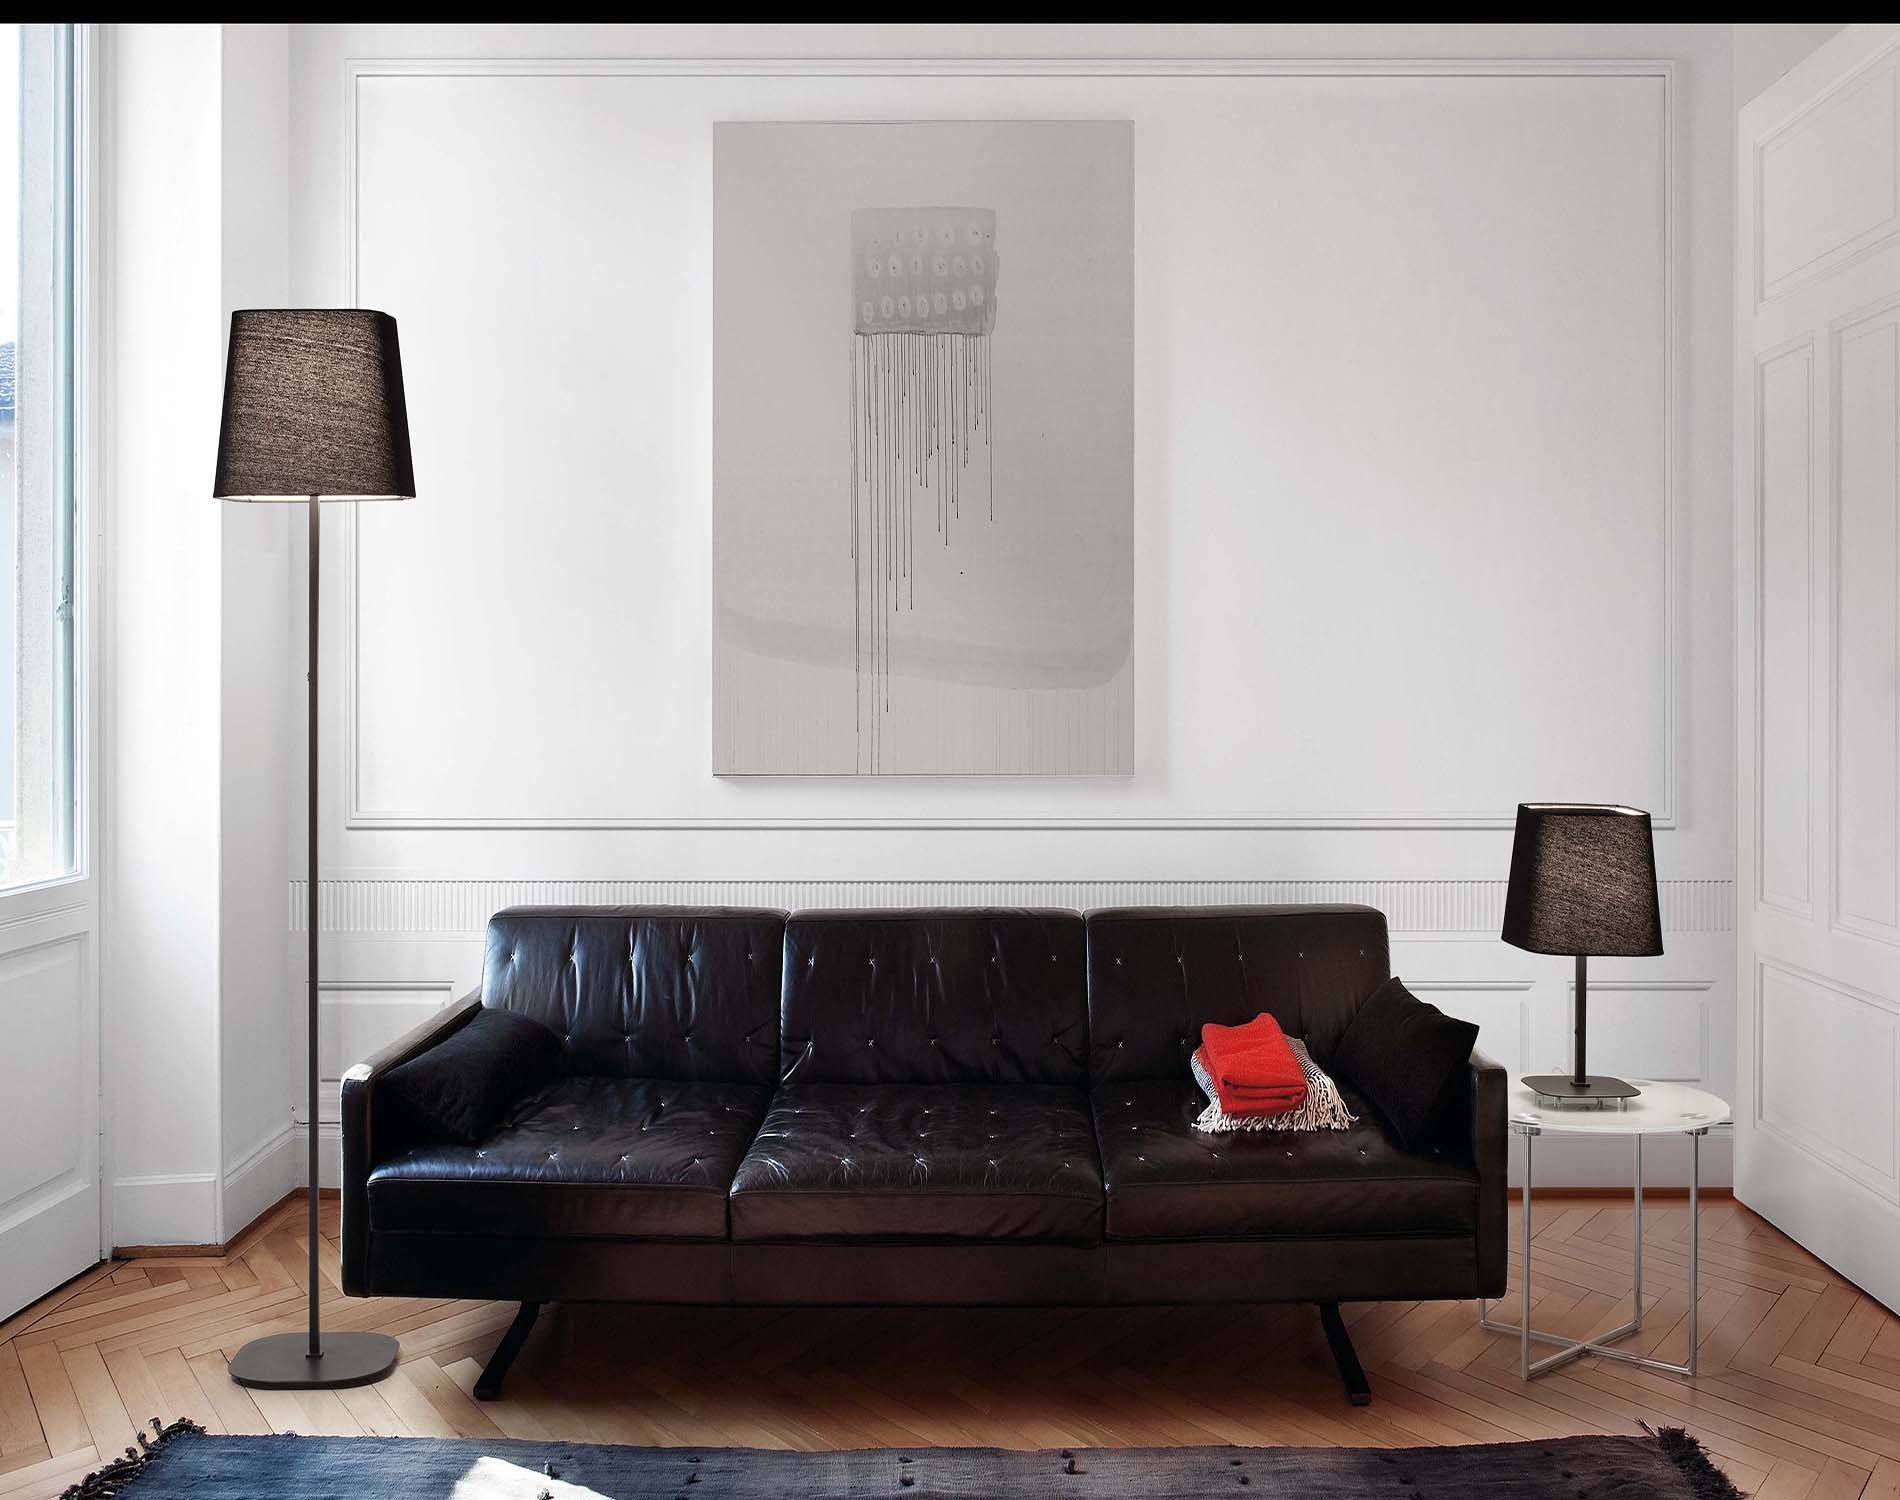 More information of SWEET floor lamp - Faro